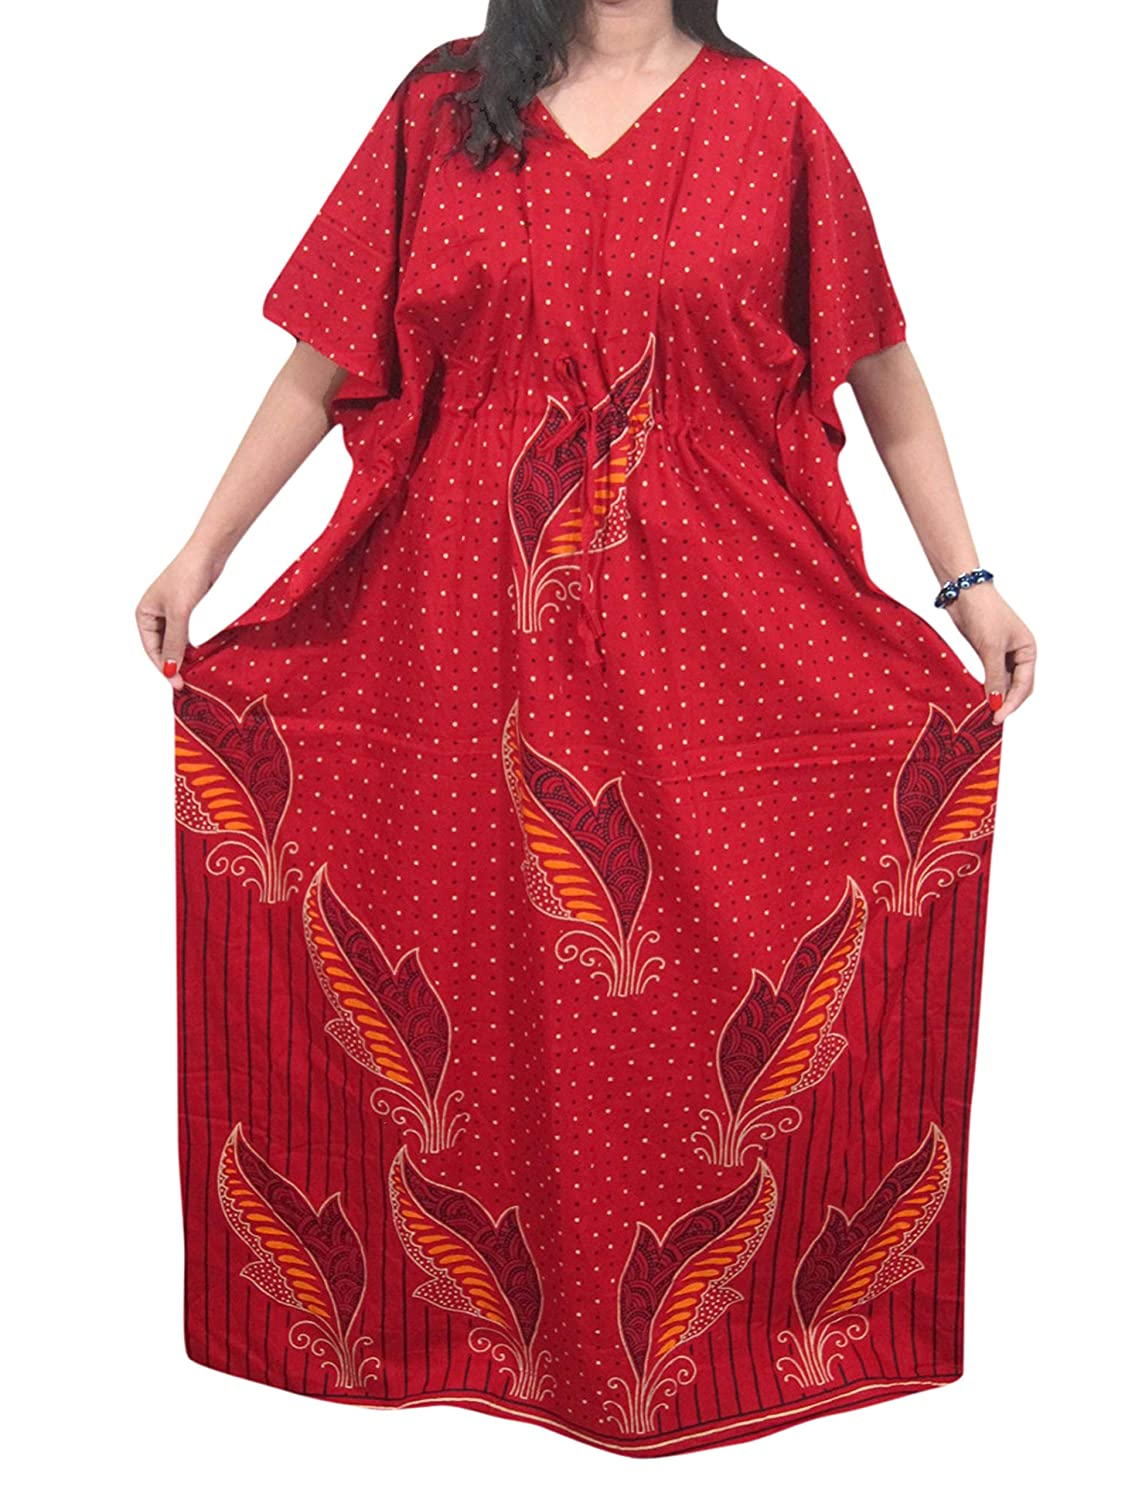 Mogul Interior Womens Red Cotton Kimono Kaftan Hippie Caftan Dress Onesize m-nit-207a